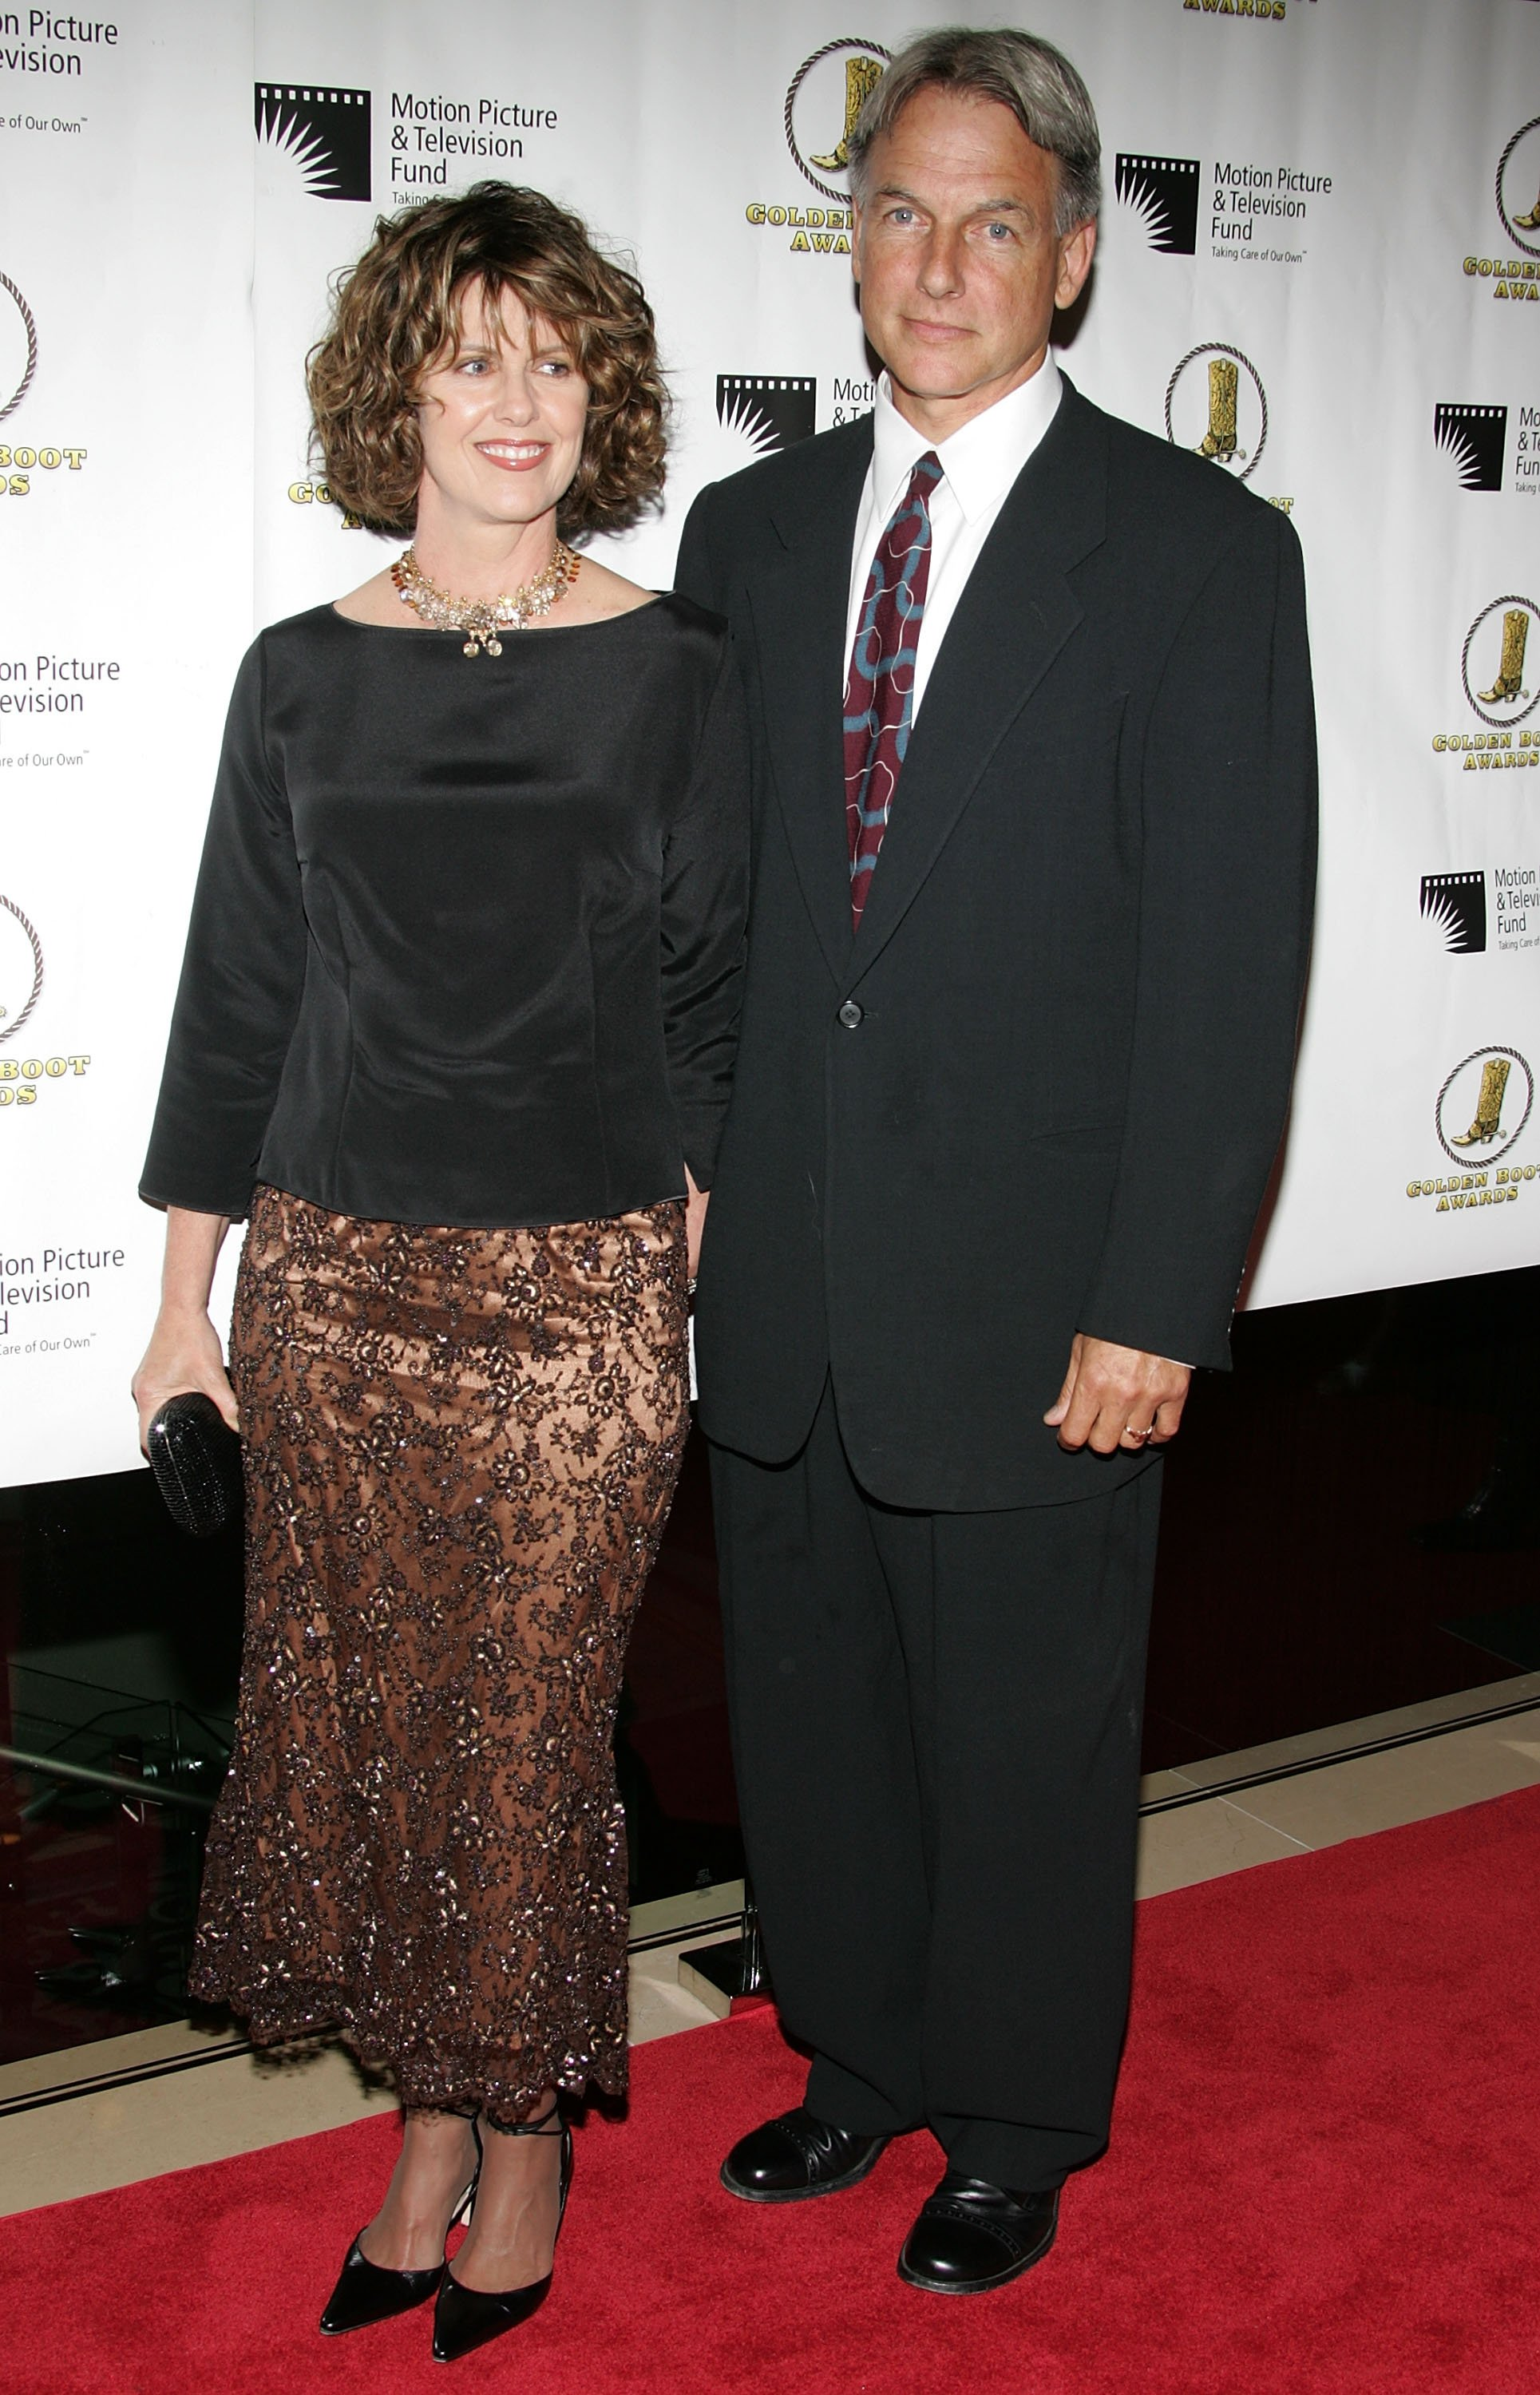 Actor Mark Harmon and wife, actress Pam Dawber, attend the Golden Boot Awards held at the Beverly Hilton Hotel.   Source: Getty Images